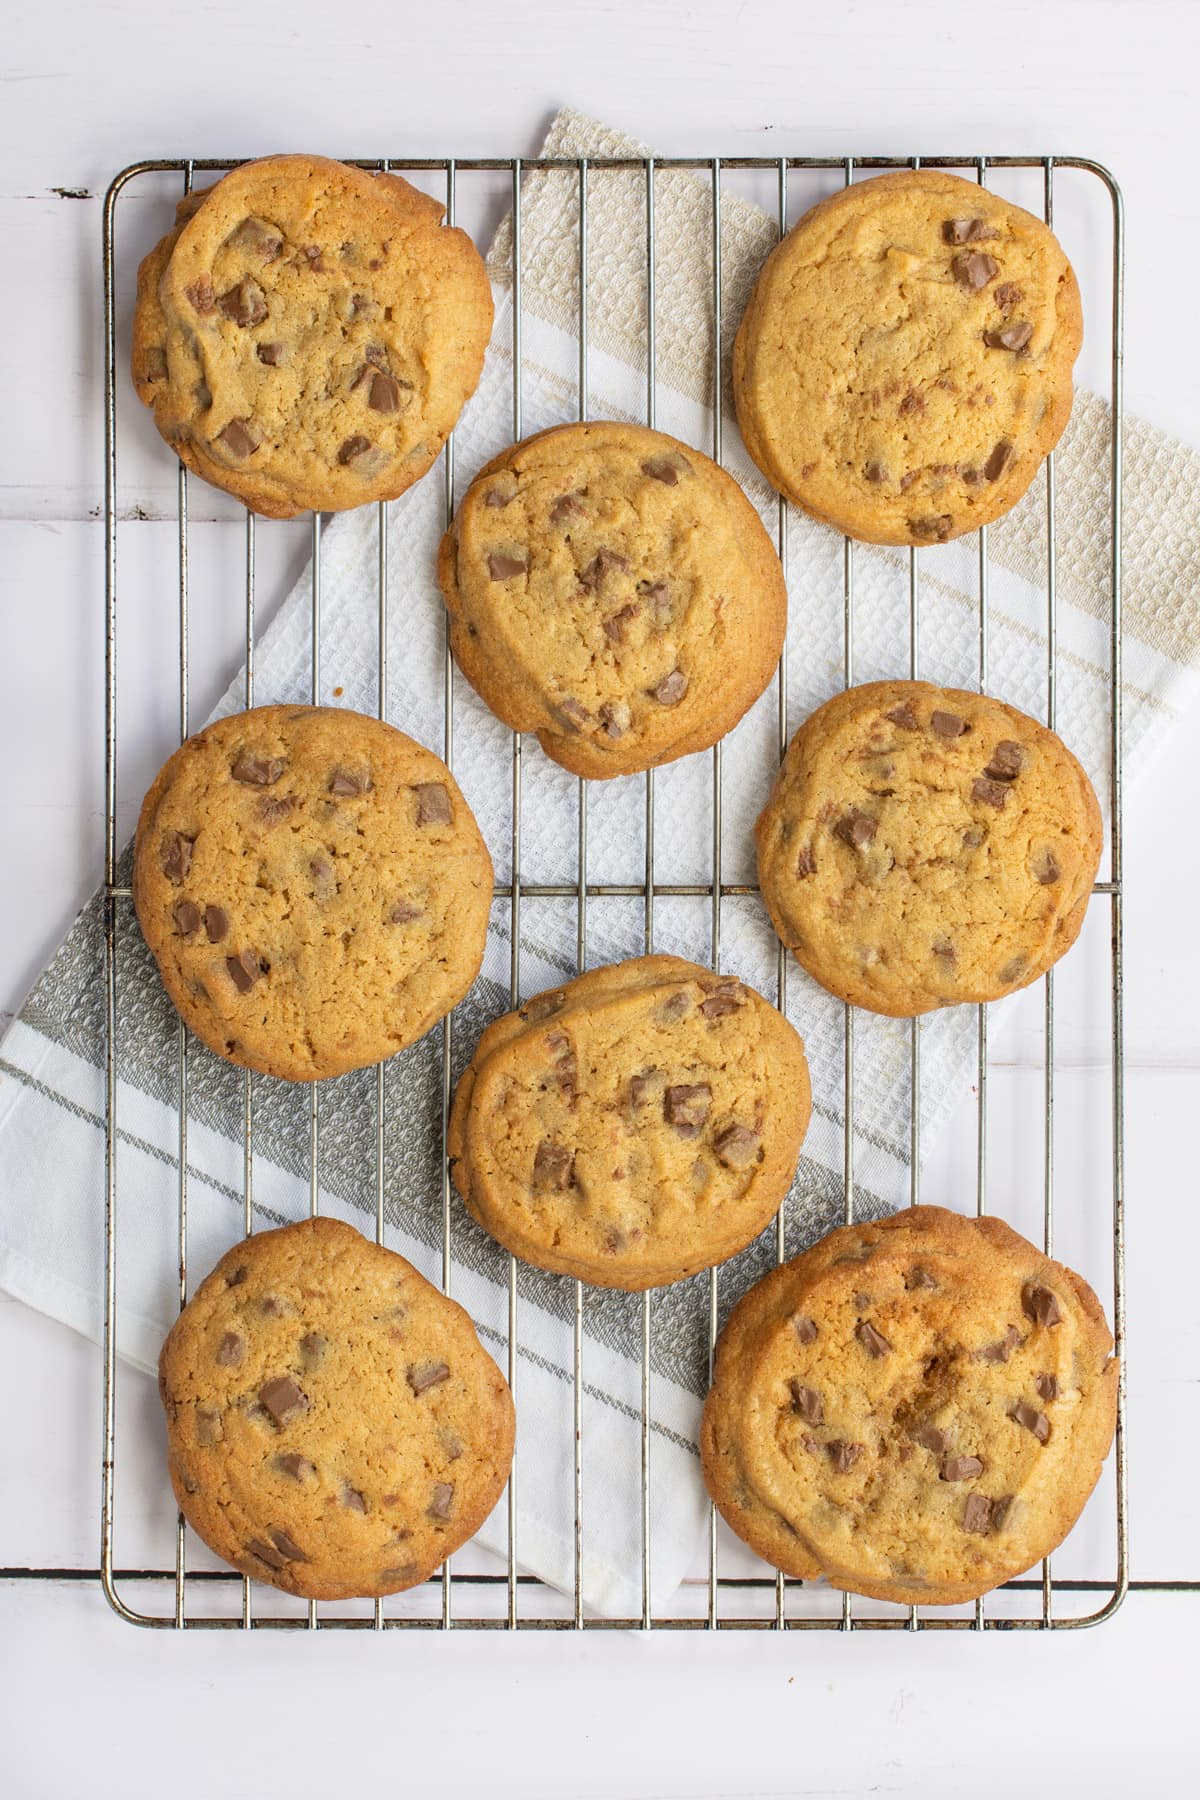 Delicious chunky chocolate chip cookies that the cookie monster would go crazy for. Soft in the middle, crunchy at the edges and packed full of milk chocolate chunks.